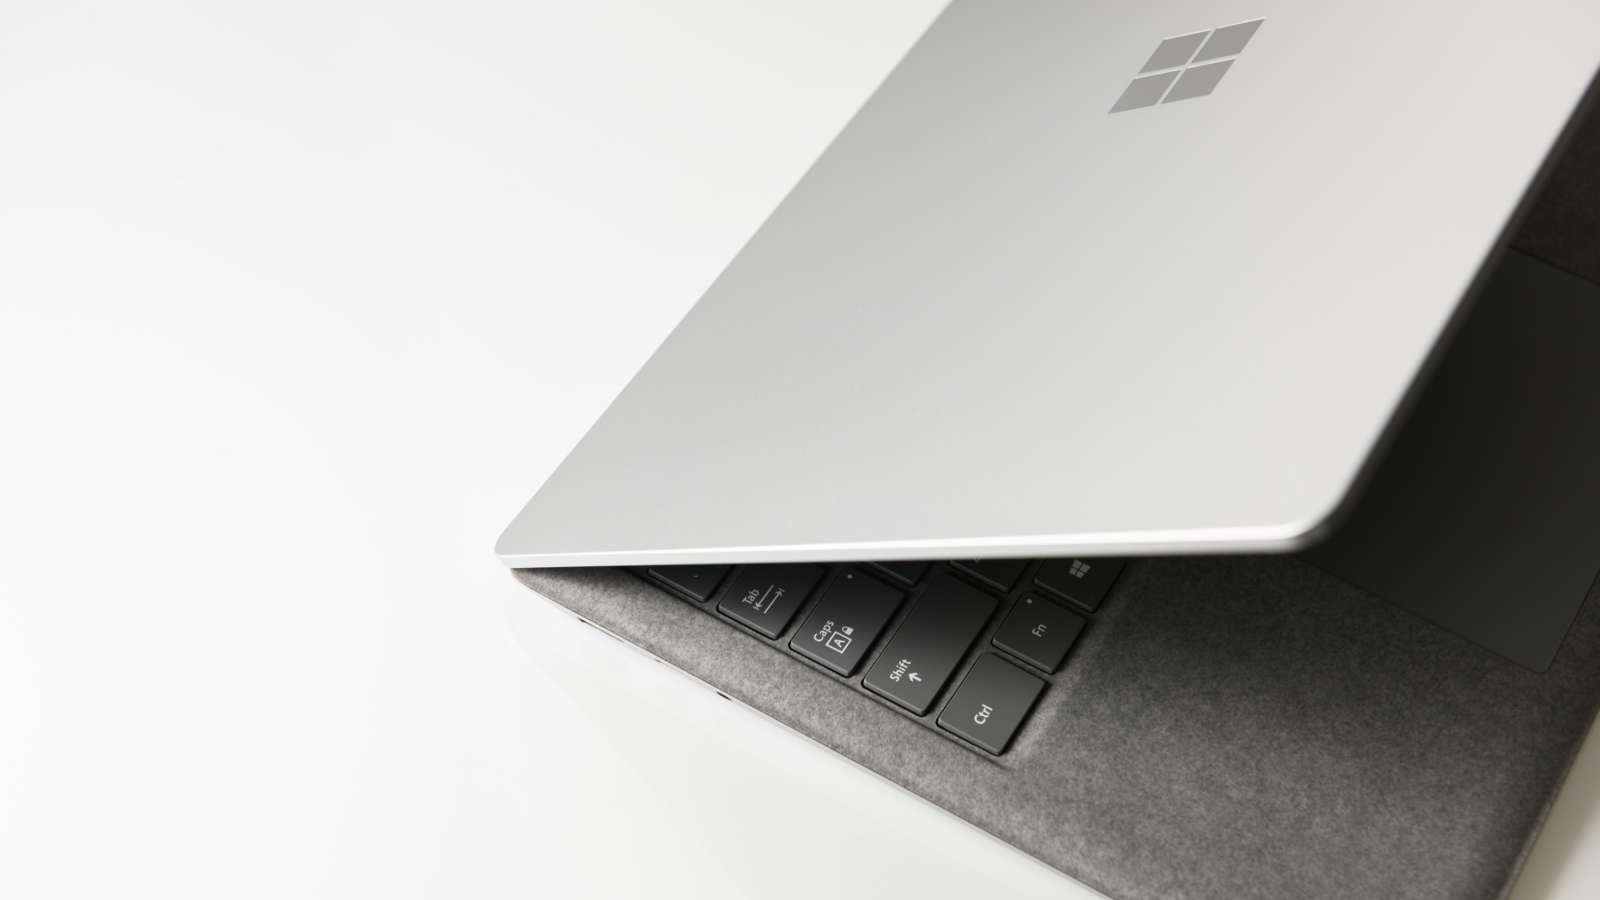 How to Set Up Windows 10 on Your PC